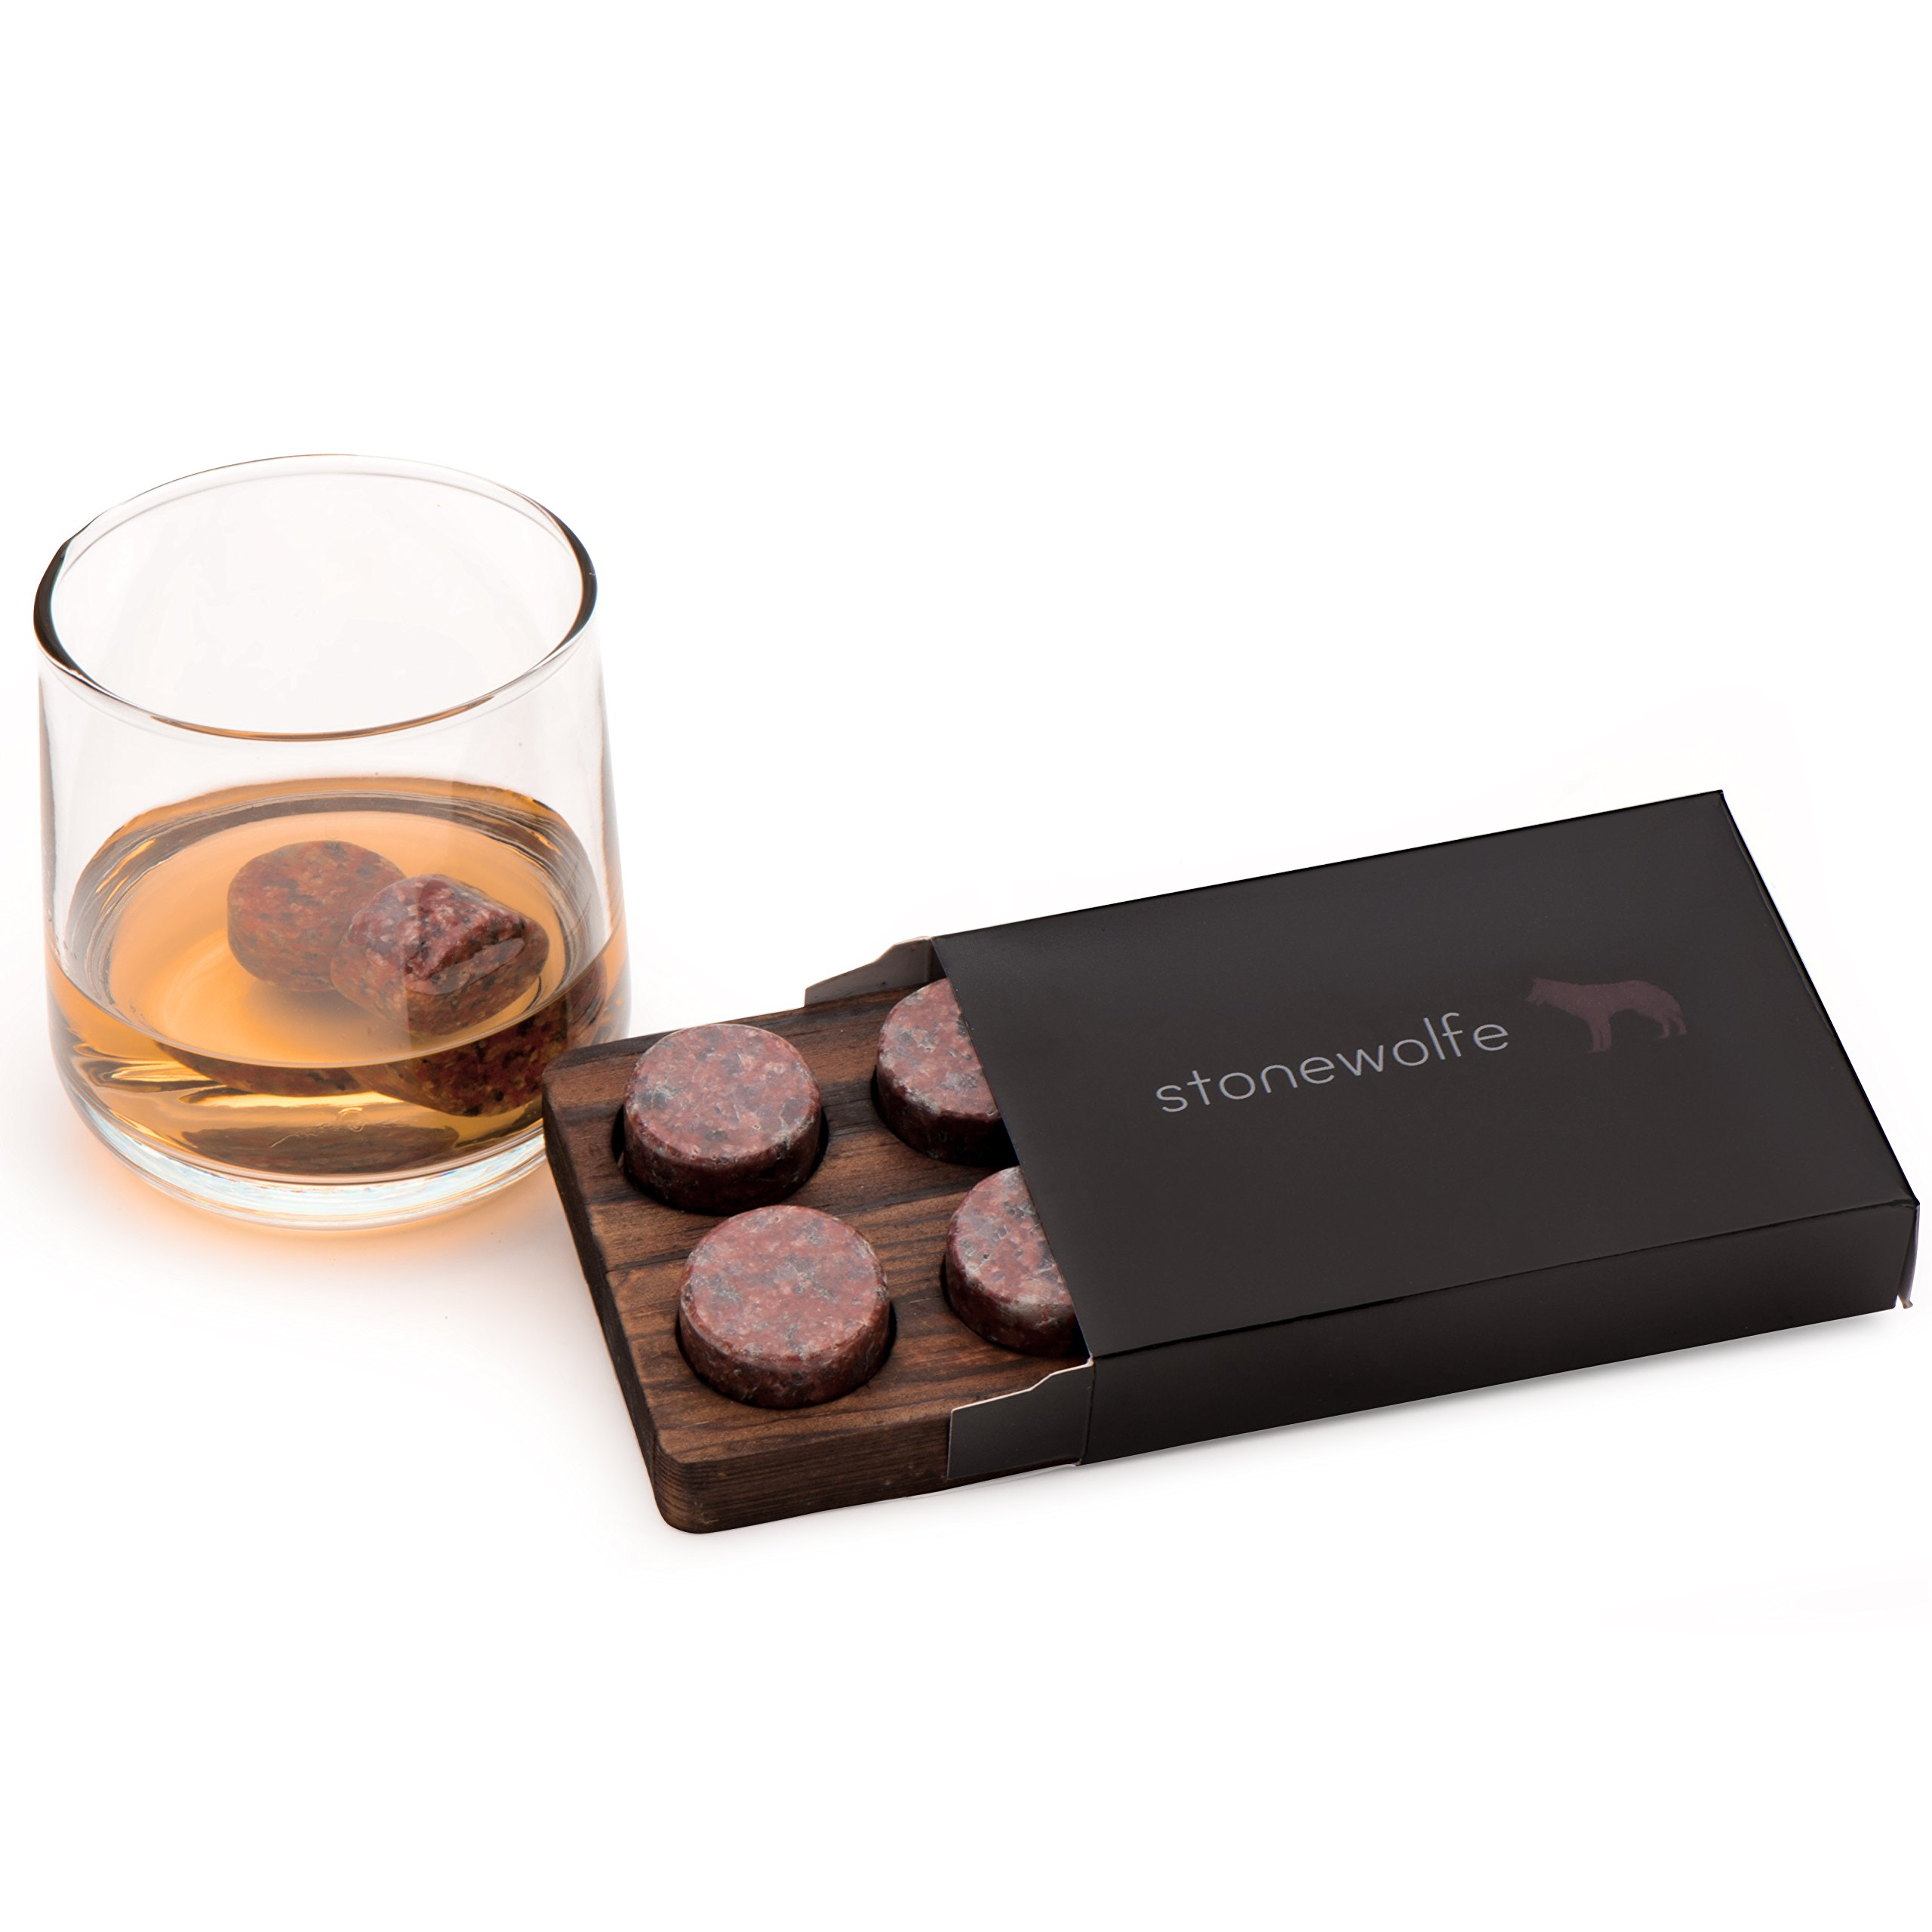 Whiskey Stones - Pure Red Granite - Set Of 6 Round Stones With Display Tray by Stonewolfe (Image #2)